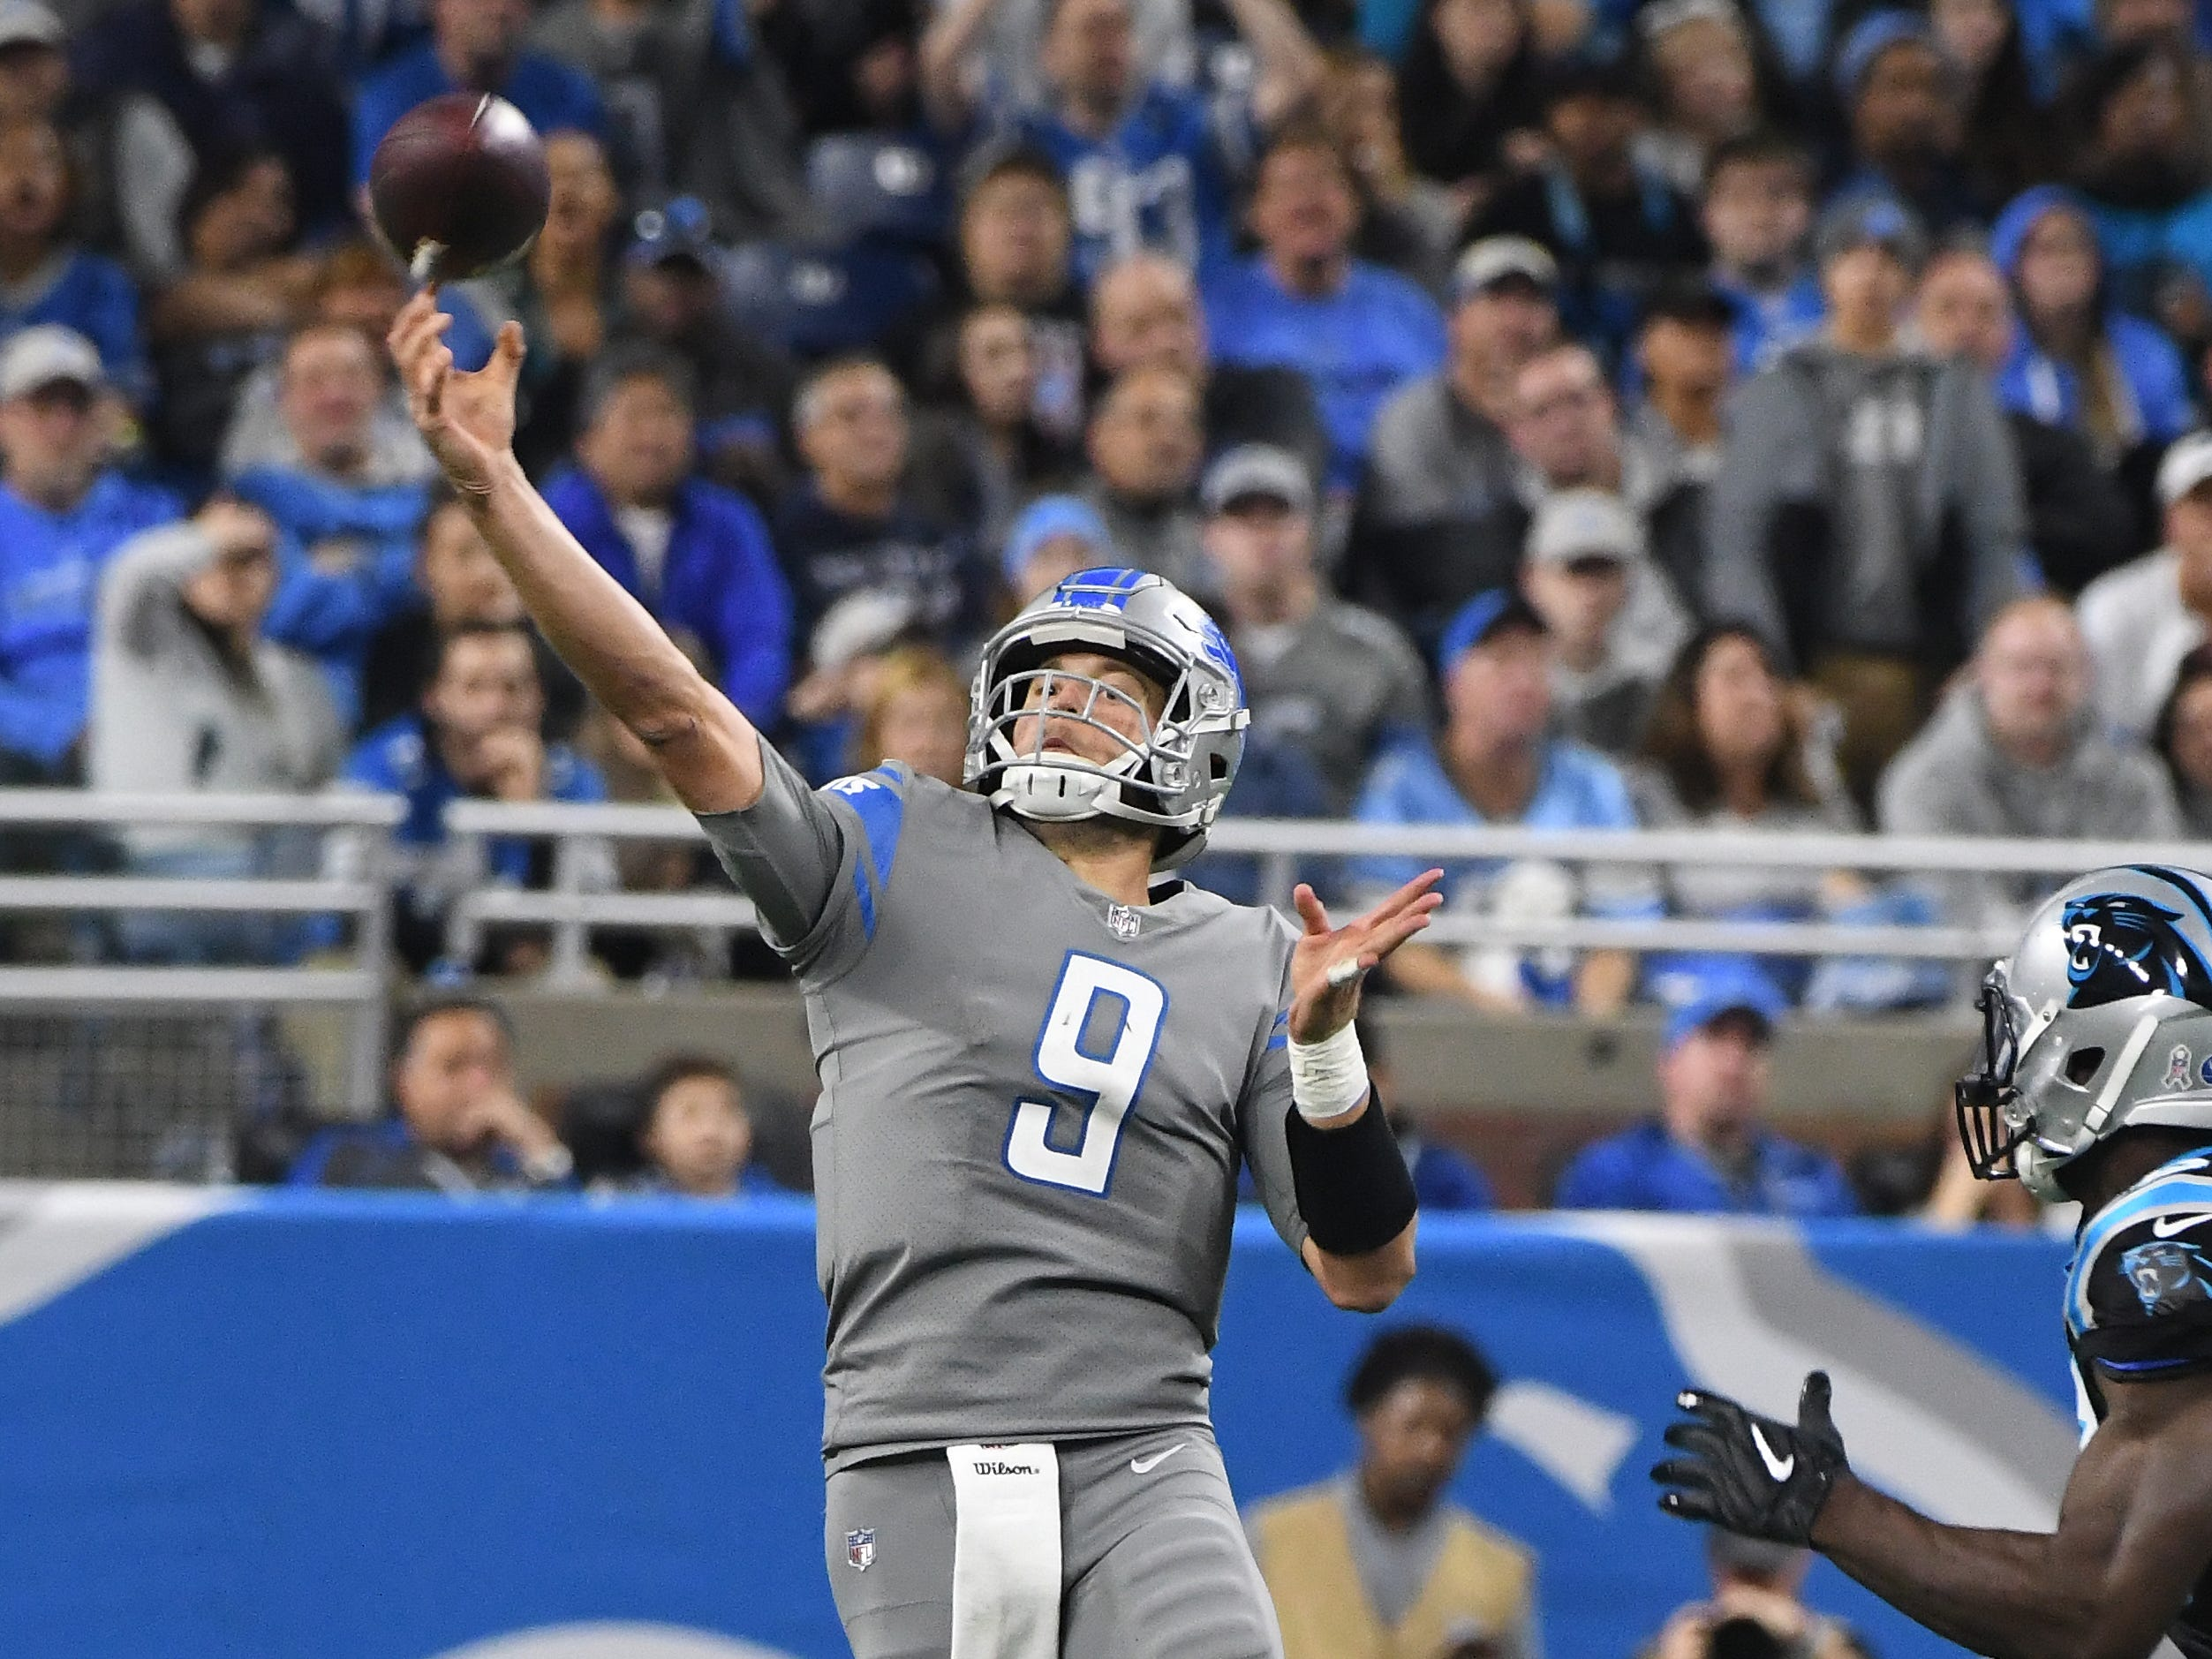 Lions quarterback Matthew Stafford throws a long first down reception to wide receiver Kenny Golladay in the fourth quarter.